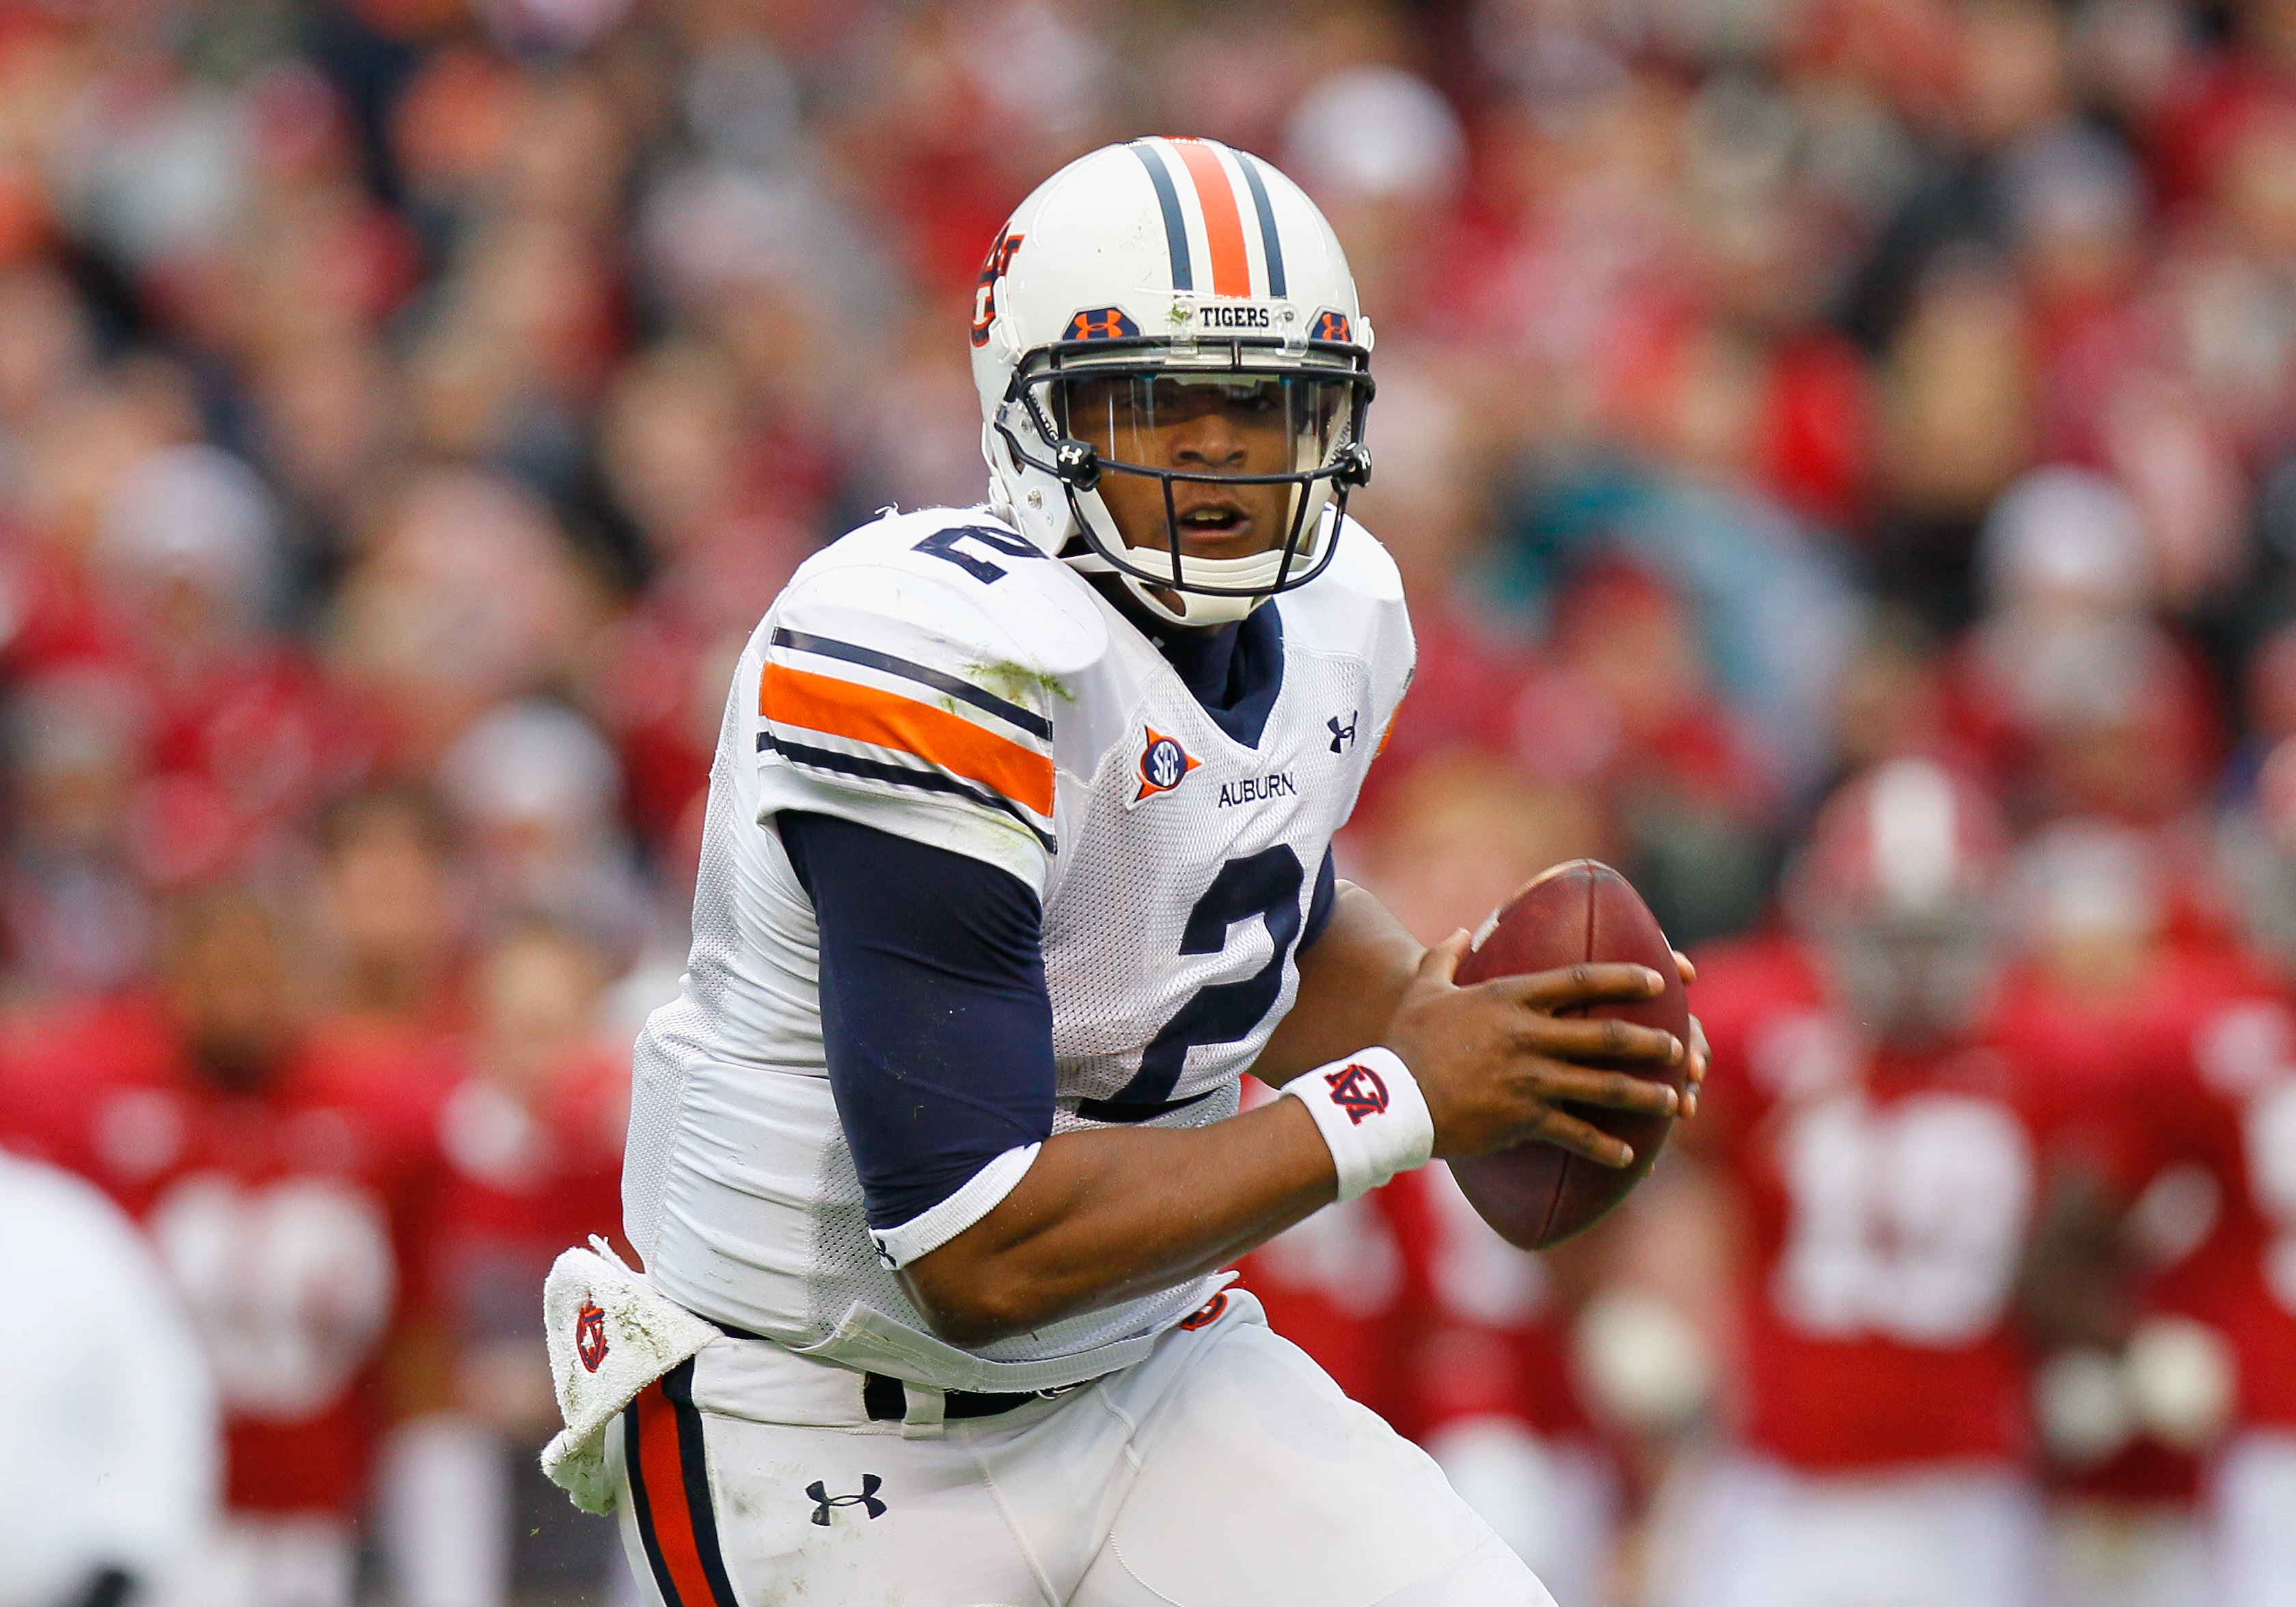 TUSCALOOSA, AL - NOVEMBER 26:  Quarterback Cam Newton #2 of the Auburn Tigers rushes out of the pocket against the Alabama Crimson Tide at Bryant-Denny Stadium on November 26, 2010 in Tuscaloosa, Alabama.  (Photo by Kevin C. Cox/Getty Images)